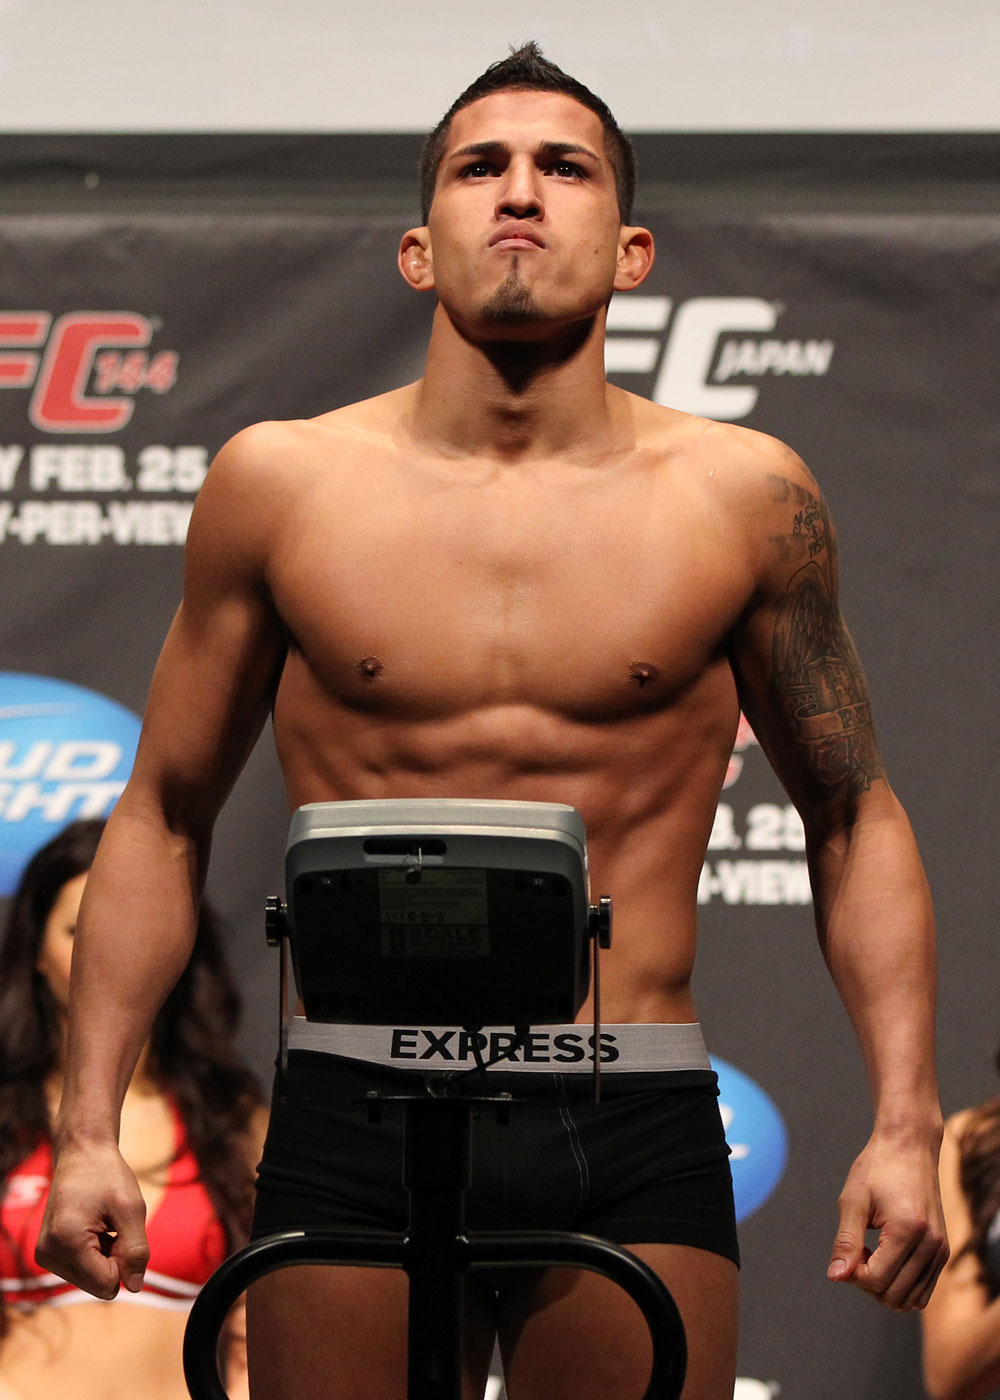 SAITAMA, JAPAN - FEBRUARY 25:  Anthony Pettis weighs in during the official UFC 144 weigh in at the Saitama Super Arena on February 25, 2012 in Saitama, Japan.  (Photo by Josh Hedges/Zuffa LLC/Zuffa LLC via Getty Images) *** Local Caption *** Anthony Pettis